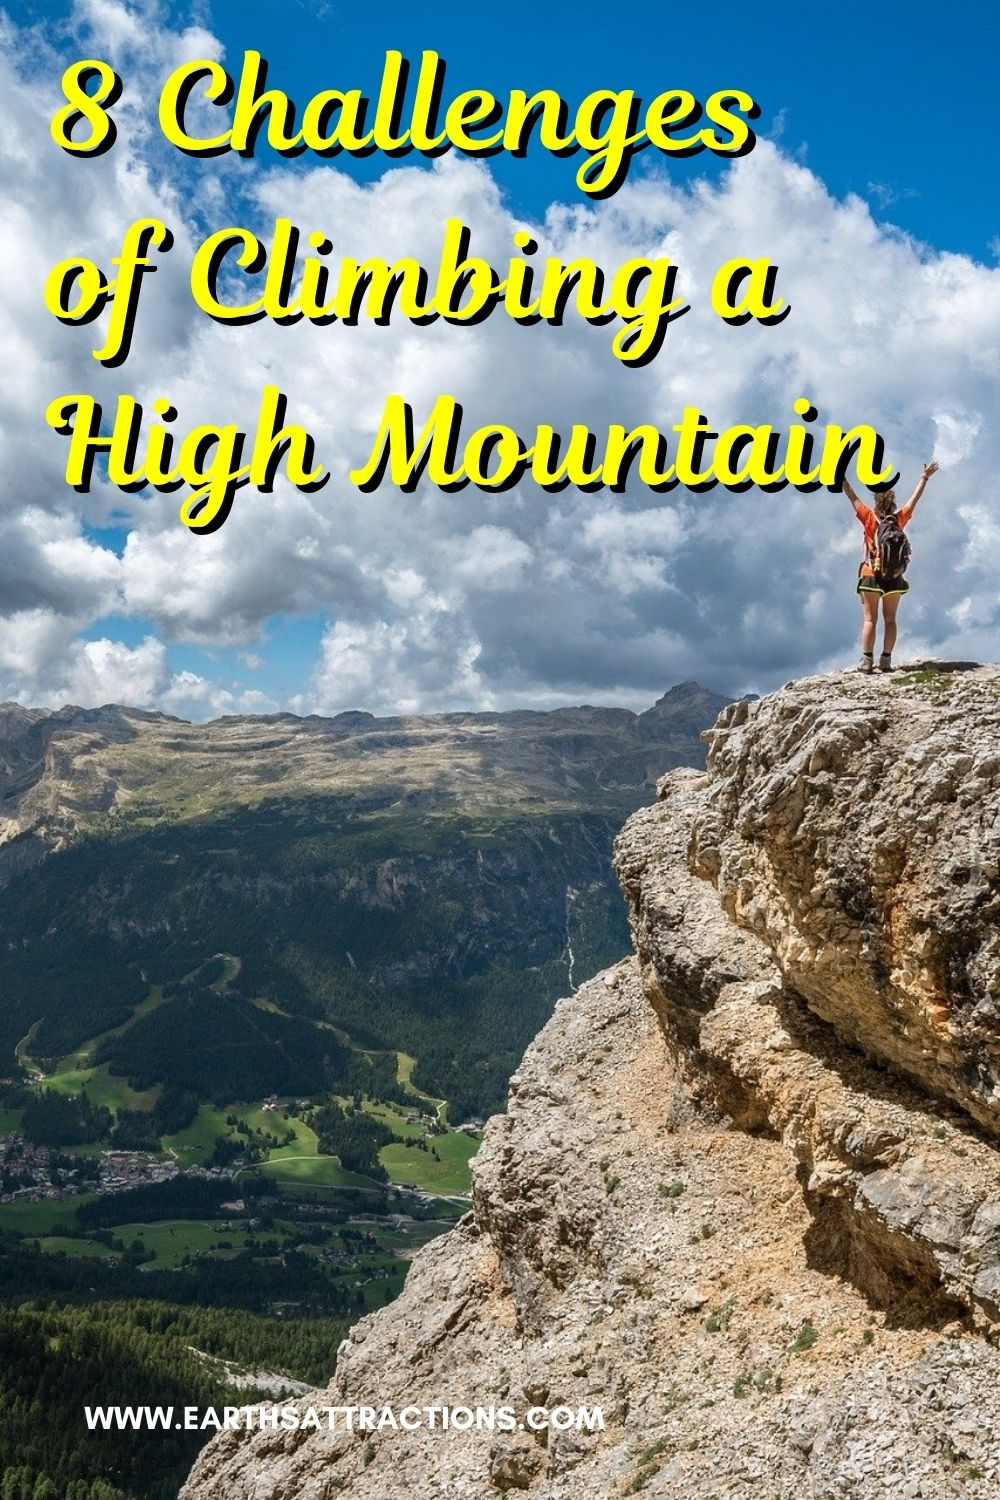 8 Challenges of Climbing a High Mountain. How to be prepared for mountain climbing